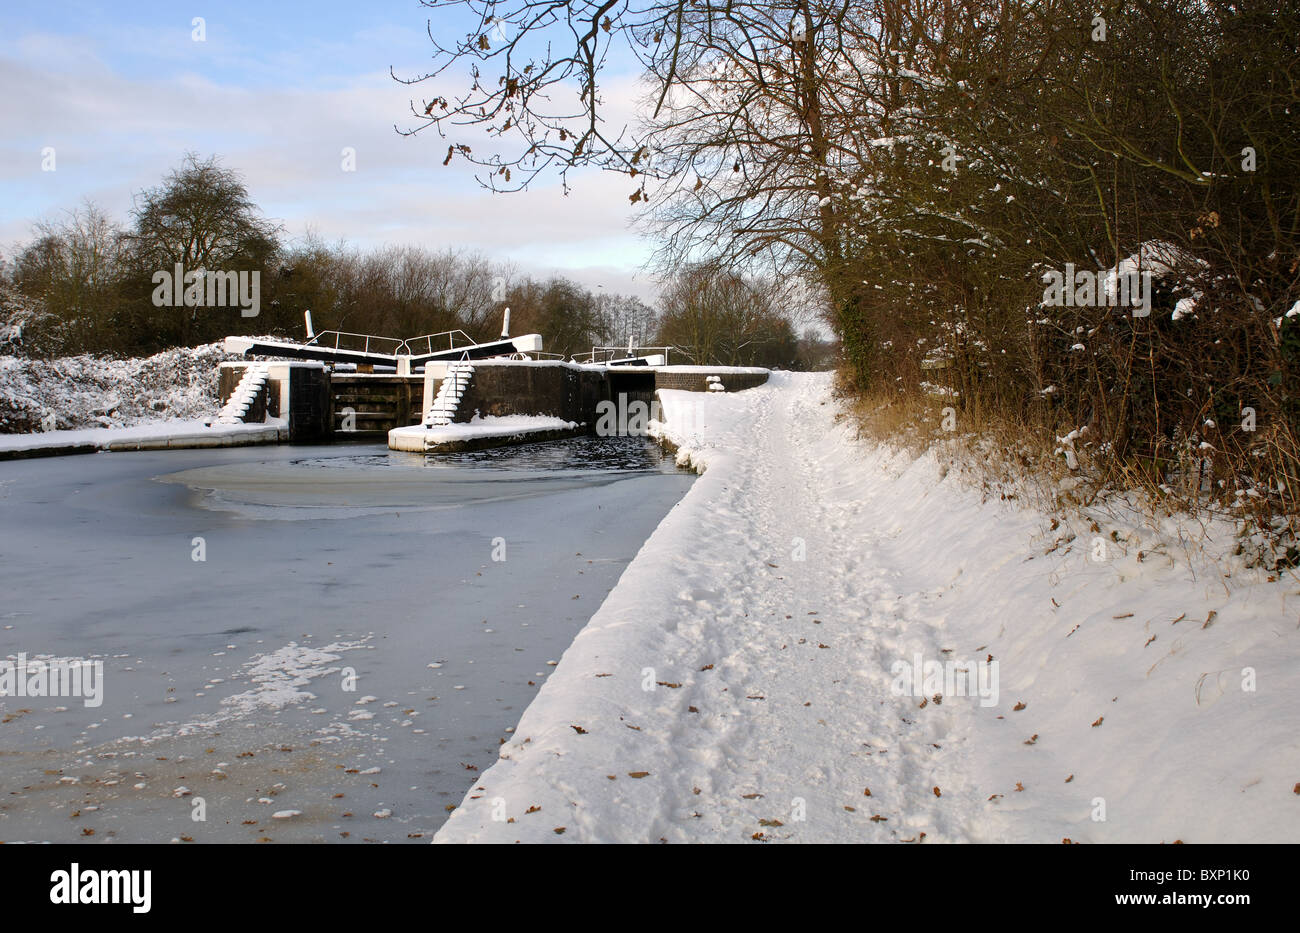 Snow on towpath of Grand Union Canal at Hatton Locks, Warwickshire, UK - Stock Image